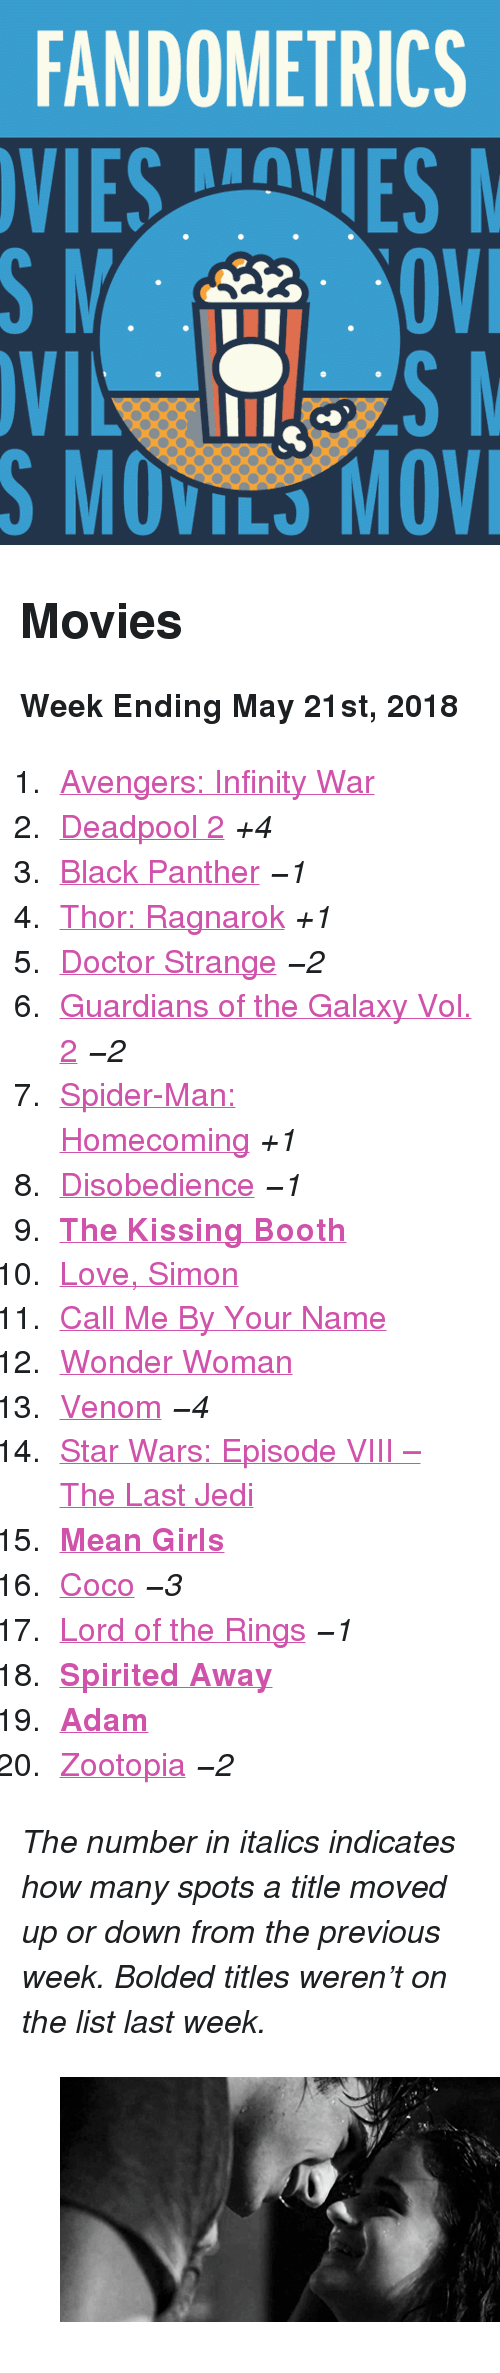 "CoCo, Doctor, and Girls: FANDOMETRICS  SMOVILS MOV <h2>Movies</h2><p><b>Week Ending May 21st, 2018</b></p><ol><li><a href=""http://www.tumblr.com/search/infinity%20war"">Avengers: Infinity War</a></li>  <li><a href=""http://www.tumblr.com/search/deadpool"">Deadpool 2</a> <i>+4</i></li>  <li><a href=""http://www.tumblr.com/search/black%20panther"">Black Panther</a> <i><i>−1</i></i></li>  <li><a href=""http://www.tumblr.com/search/thor%20ragnarok"">Thor: Ragnarok</a> <i>+1</i></li>  <li><a href=""http://www.tumblr.com/search/doctor%20strange"">Doctor Strange</a> <i><i>−2</i></i></li>  <li><a href=""http://www.tumblr.com/search/guardians%20of%20the%20galaxy"">Guardians of the Galaxy Vol. 2</a> <i><i>−2</i></i></li>  <li><a href=""http://www.tumblr.com/search/spiderman%20homecoming"">Spider-Man: Homecoming</a> <i>+1</i></li>  <li><a href=""http://www.tumblr.com/search/disobedience"">Disobedience</a> <i><i>−1</i></i></li>  <li><a href=""http://www.tumblr.com/search/the%20kissing%20booth""><b>The Kissing Booth</b></a></li>  <li><a href=""http://www.tumblr.com/search/love%20simon"">Love, Simon</a></li>  <li><a href=""http://www.tumblr.com/search/call%20me%20by%20your%20name"">Call Me By Your Name</a></li>  <li><a href=""http://www.tumblr.com/search/wonder%20woman"">Wonder Woman</a></li>  <li><a href=""http://www.tumblr.com/search/venom"">Venom</a> <i><i>−4</i></i></li>  <li><a href=""http://www.tumblr.com/search/the%20last%20jedi"">Star Wars: Episode VIII – The Last Jedi</a></li>  <li><a href=""http://www.tumblr.com/search/mean%20girls""><b>Mean Girls</b></a></li>  <li><a href=""http://www.tumblr.com/search/coco"">Coco</a> <i><i>−3</i></i></li>  <li><a href=""http://www.tumblr.com/search/lotr"">Lord of the Rings</a> <i><i>−1</i></i></li>  <li><a href=""http://www.tumblr.com/search/spirited%20away""><b>Spirited Away</b></a></li>  <li><a href=""http://www.tumblr.com/search/adam%20(2018)""><b>Adam</b></a></li>  <li><a href=""http://www.tumblr.com/search/zootopia"">Zootopia</a> <i><i>−2</i></i></li></ol><p><i>The number in italics indicates how many spots a title moved up or down from the previous week. Bolded titles weren't on the list last week.</i></p> <figure data-orig-width=""540"" data-orig-height=""245"" data-tumblr-attribution=""msanonships:7H52soaa9T3E5uj3jotKuA:ZVgpys2XzQ3Ne"" class=""tmblr-full""><img src=""https://78.media.tumblr.com/f2875d96a3b61a9722796863243de2ac/tumblr_p8qilubEGY1s6uutqo1_540.gifv"" alt=""image"" data-orig-width=""540"" data-orig-height=""245""/></figure>"